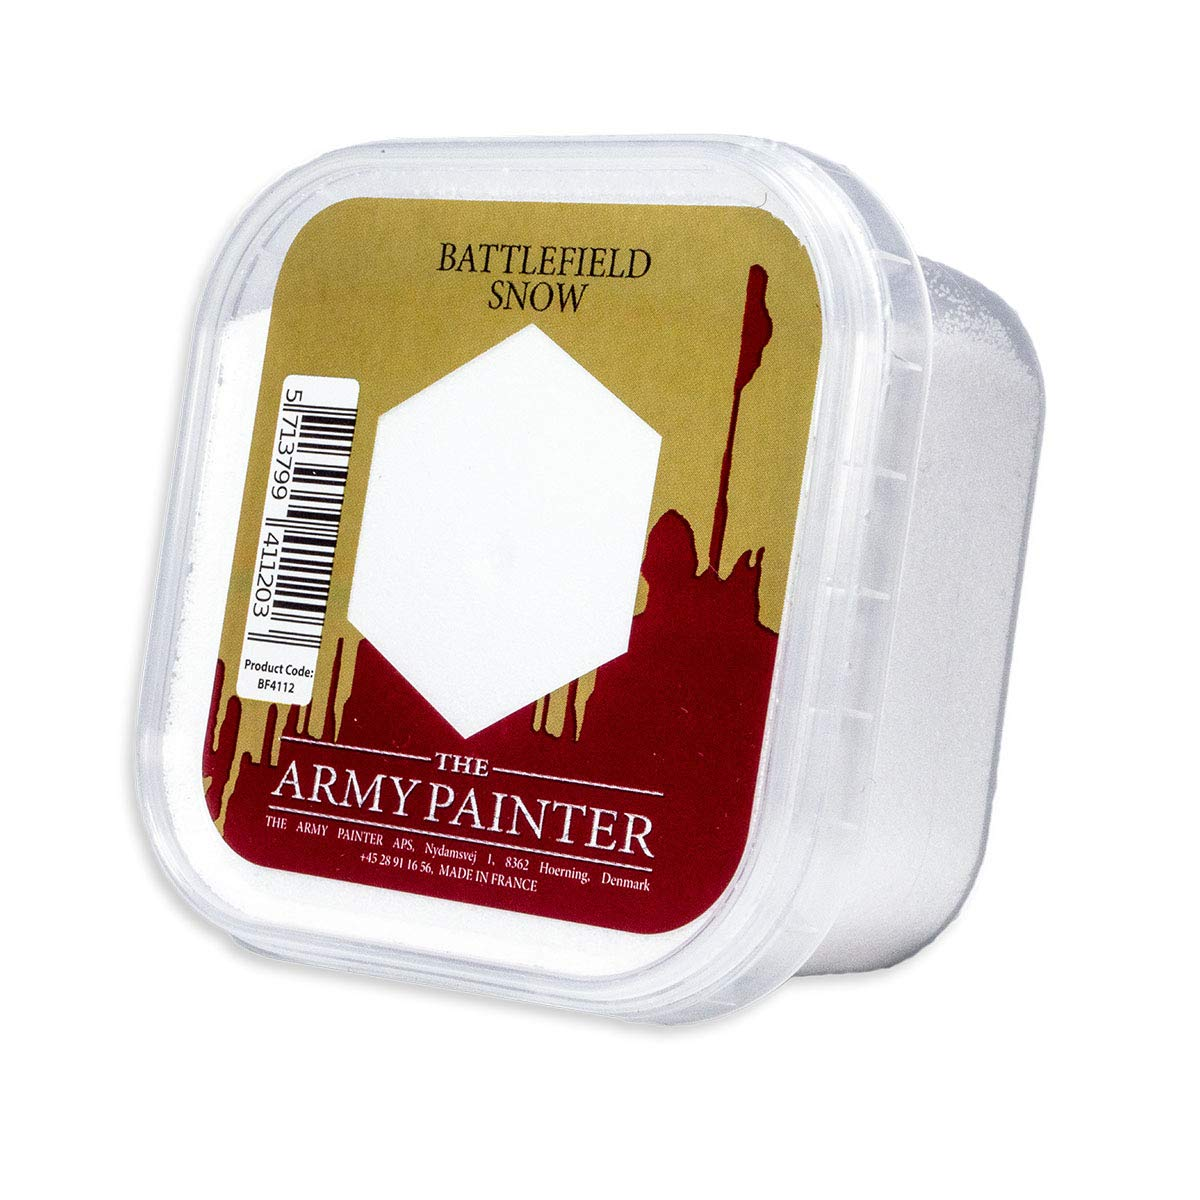 The Army Painter Basing: Battlefield Snow - Miniature Models Bases for a Realistic Look